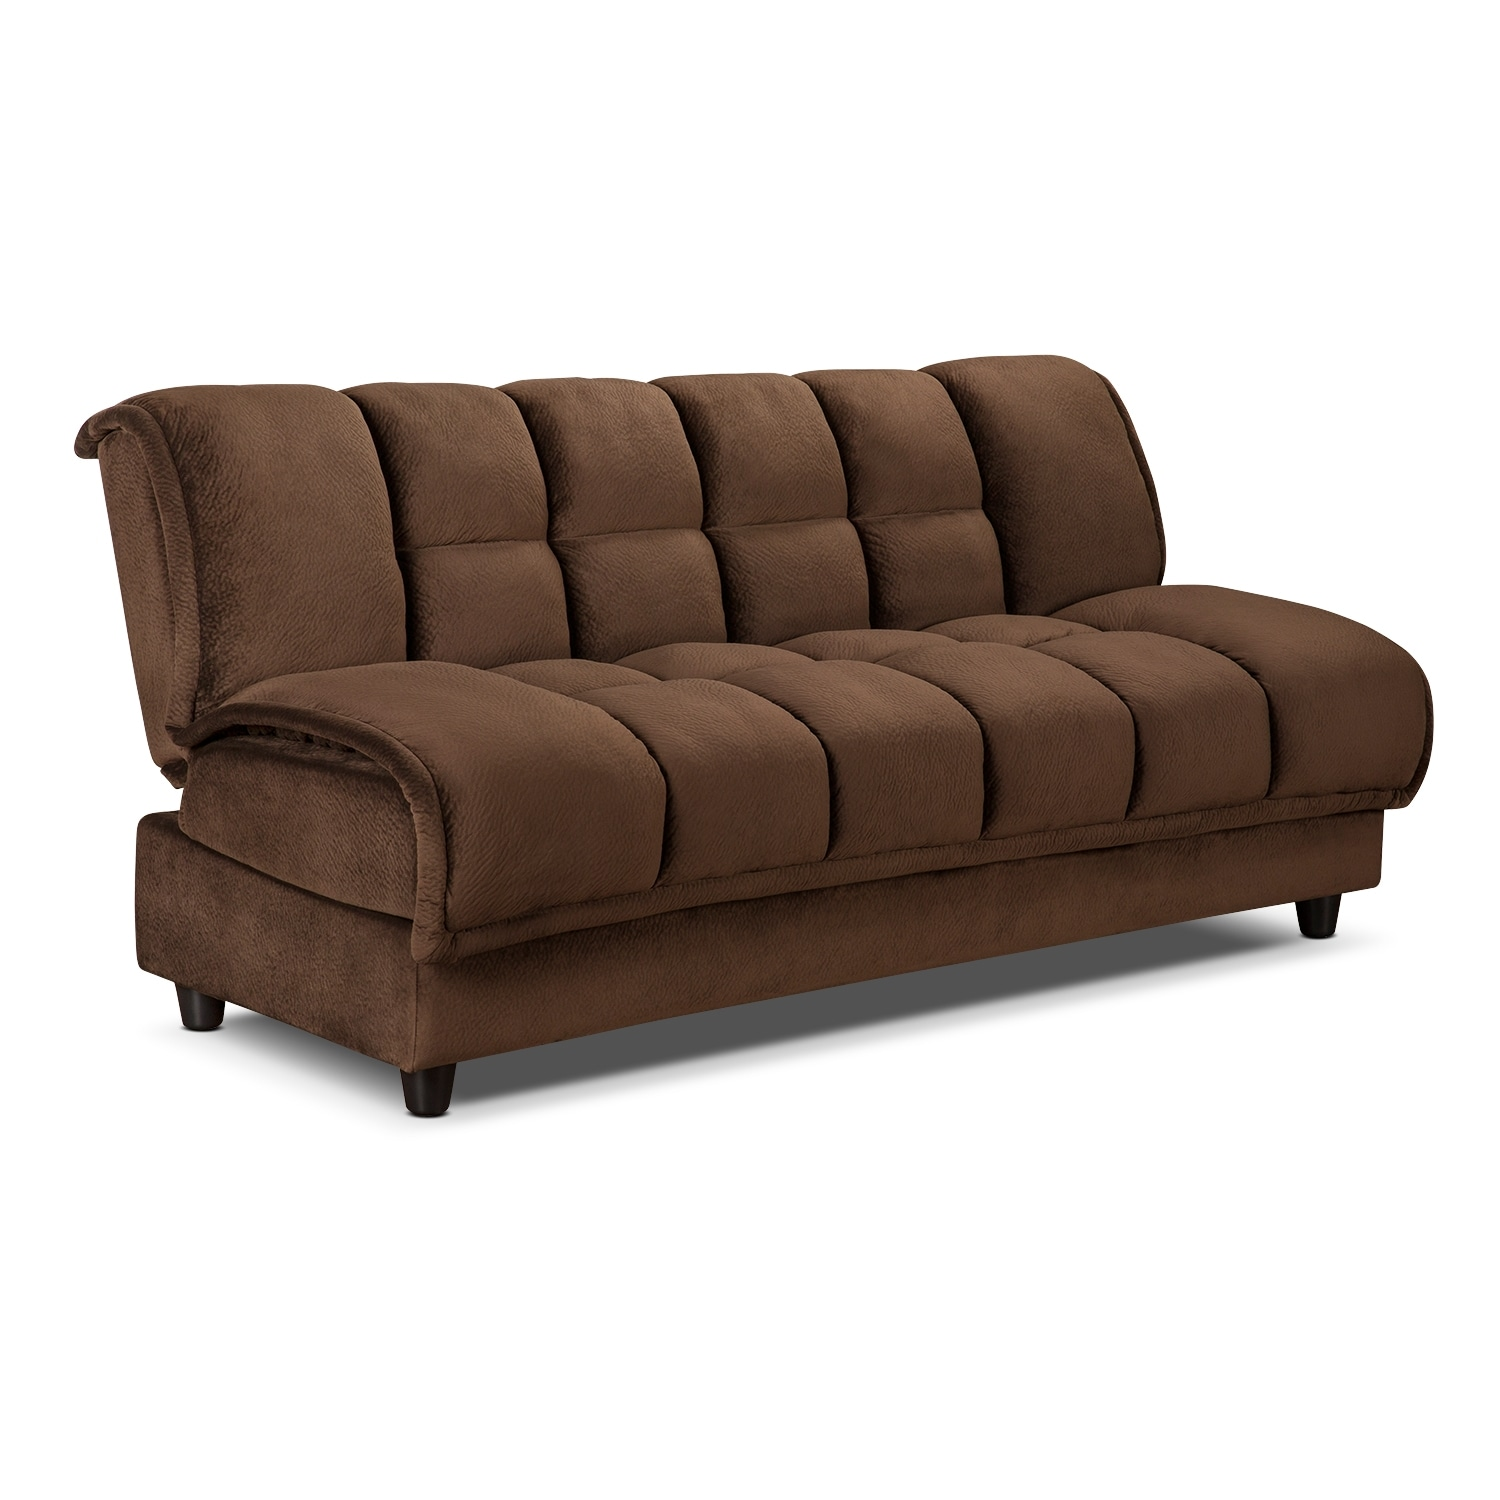 Darrow futon sofa bed with storage Couch and bed